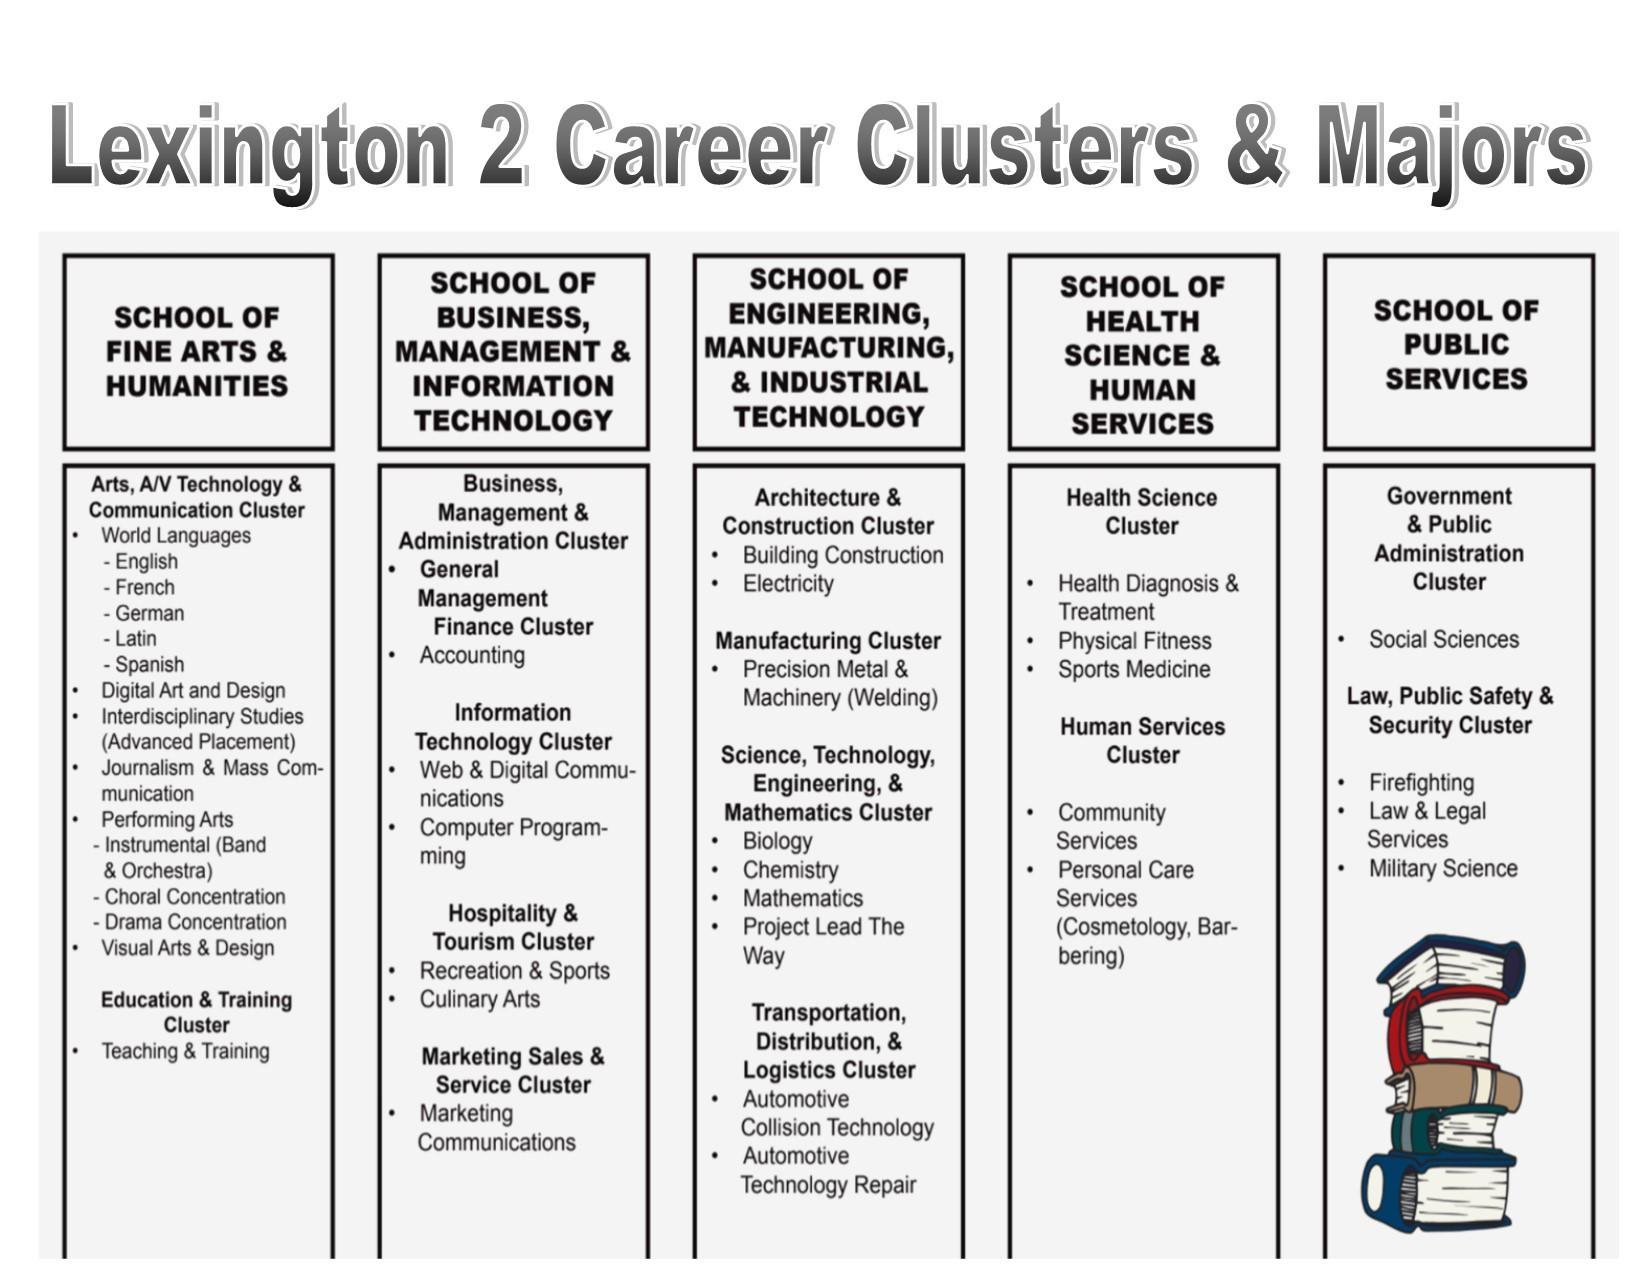 Lex 2 Career Clusters and Majors